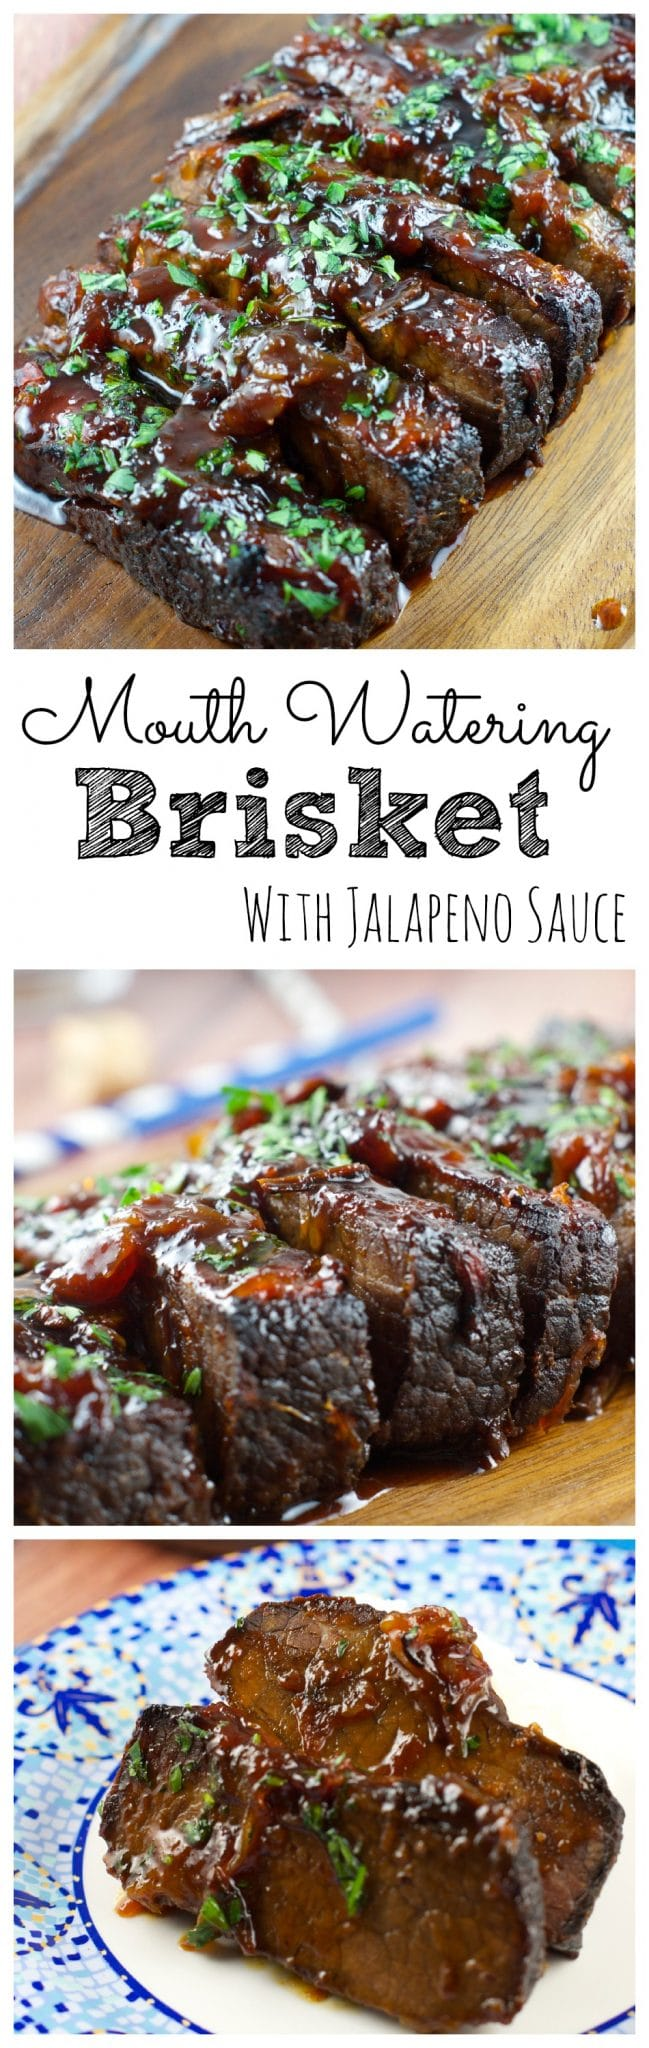 This melt in your mouth Jalapeño Brisket Recipe is a crowd pleaser! All the flavor without the heat. Serve it in your next gathering and it will be a hit.